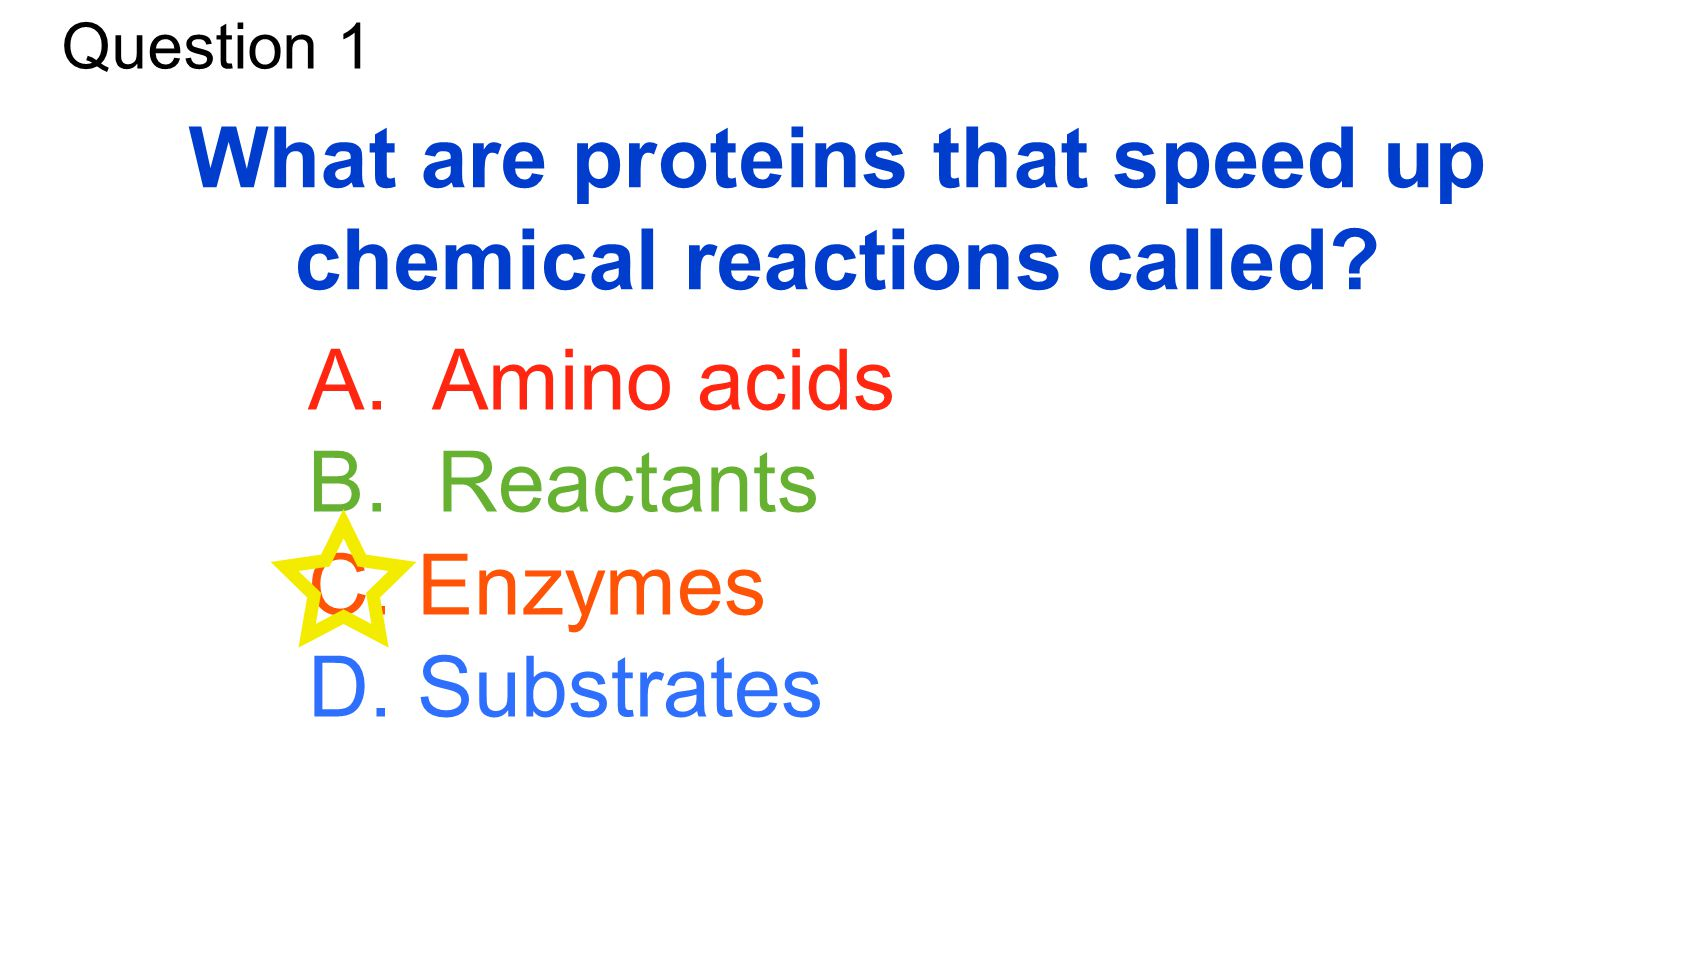 What are proteins that speed up chemical reactions called